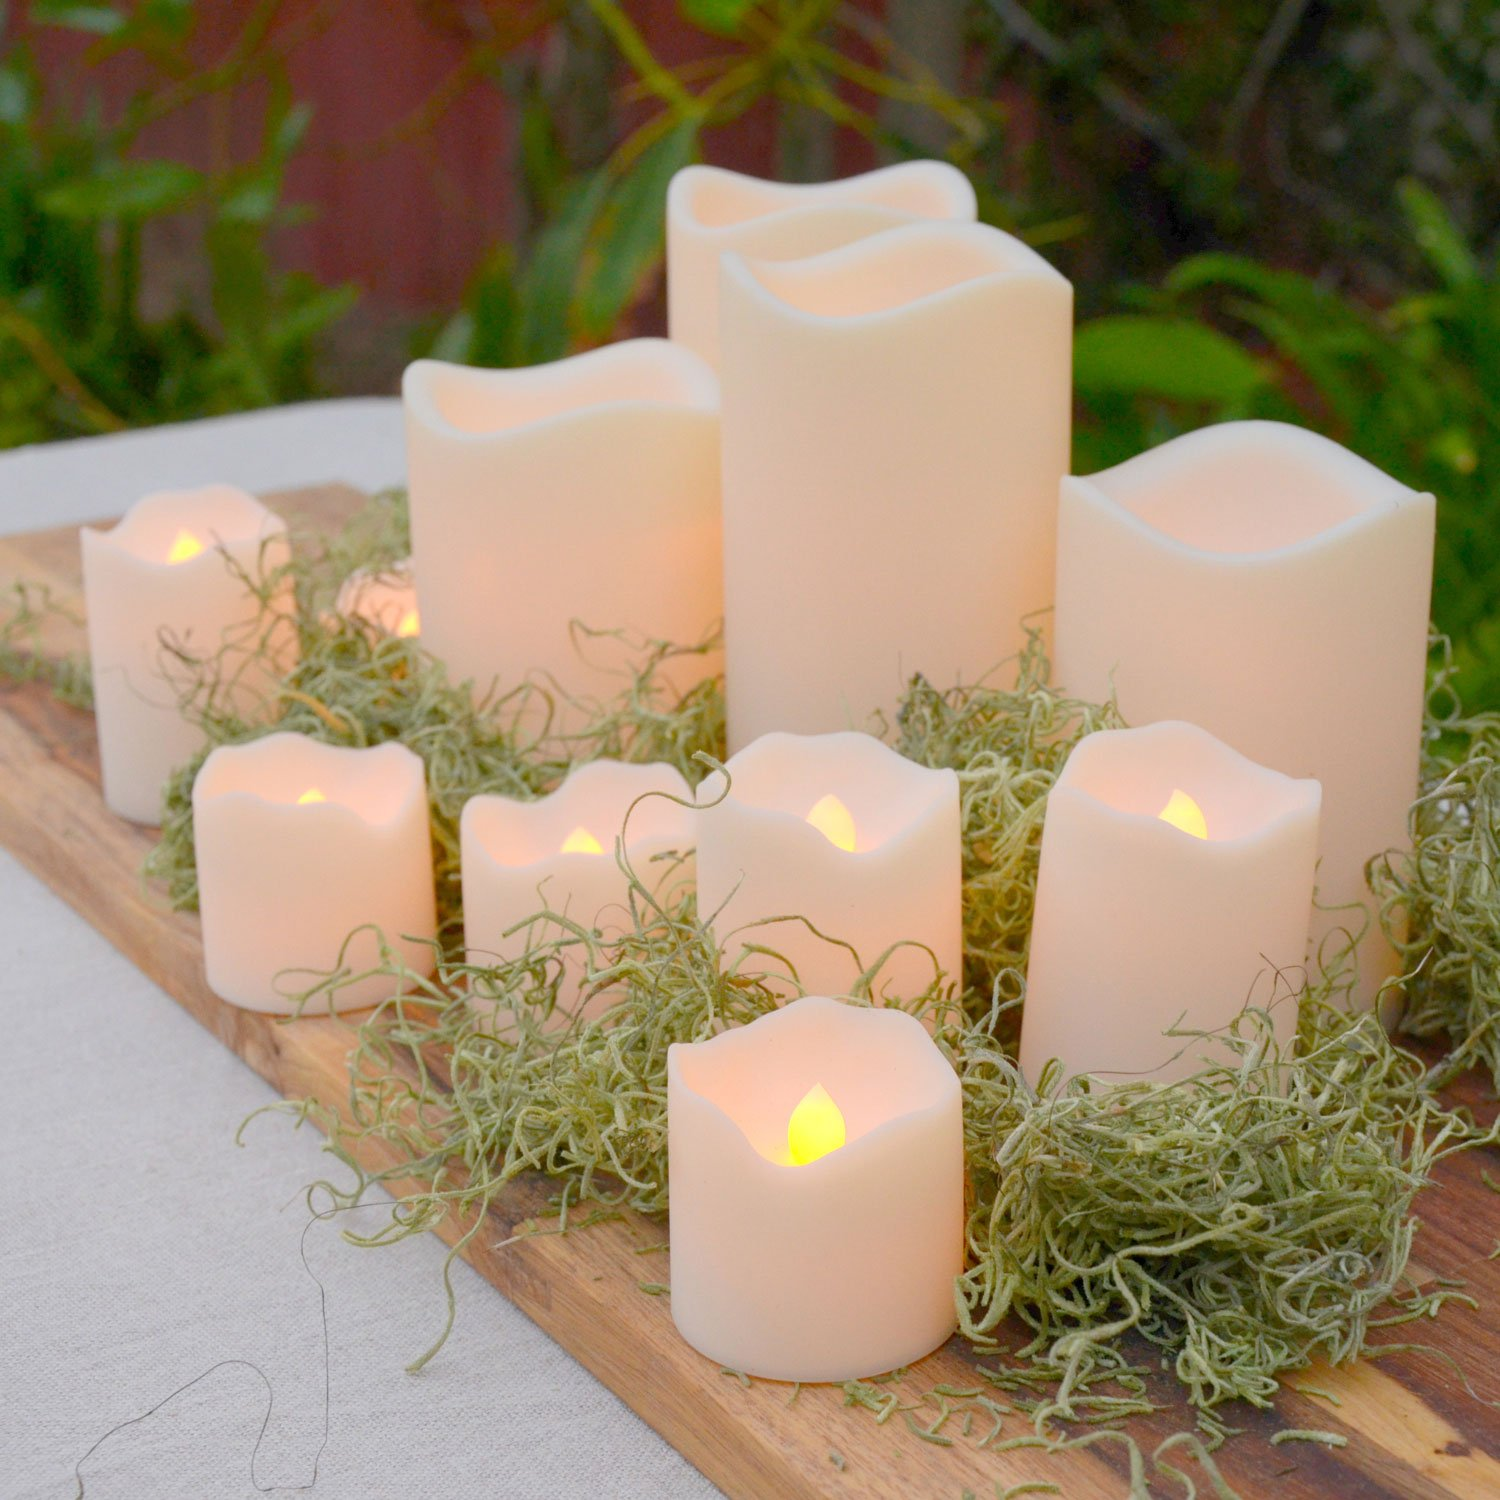 Indoor Outdoor Candles - Flameless LED Plastic Candle Set of 12, Water Resistant, Warm White and Color Changing Glow, Batteries Included